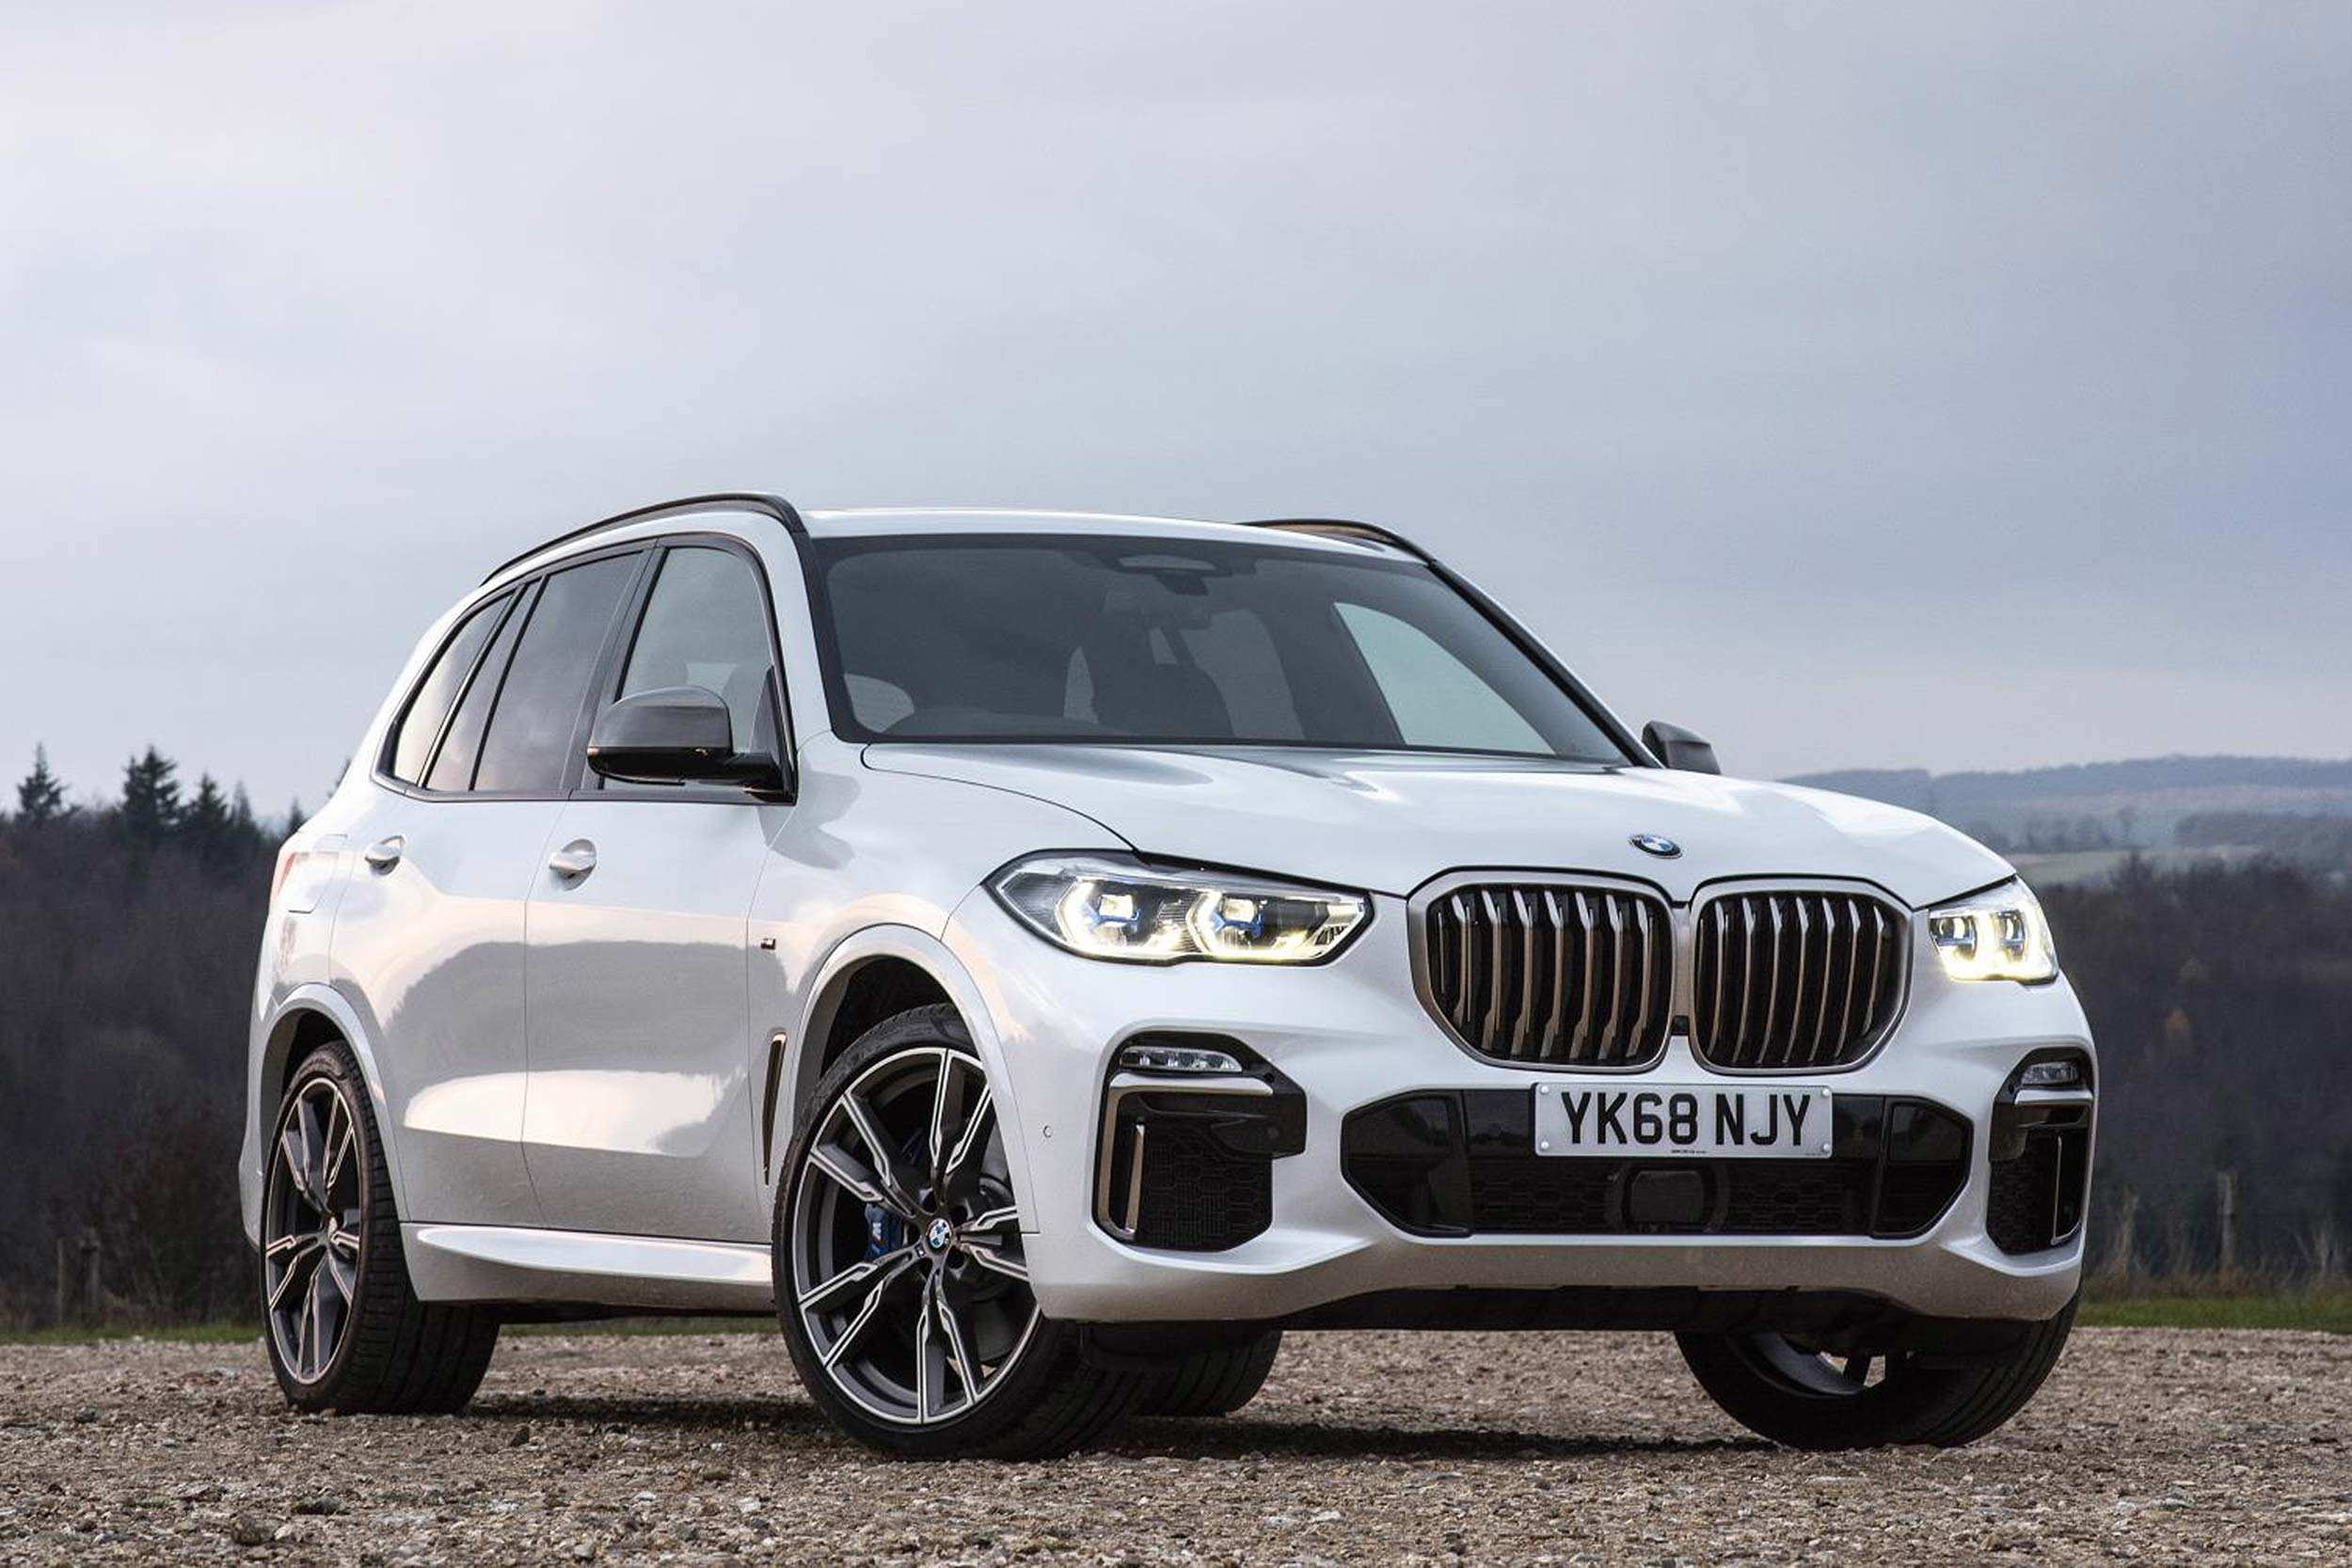 31 Gallery of When Is The Bmw X5 2019 Release Date Engine Specs by When Is The Bmw X5 2019 Release Date Engine